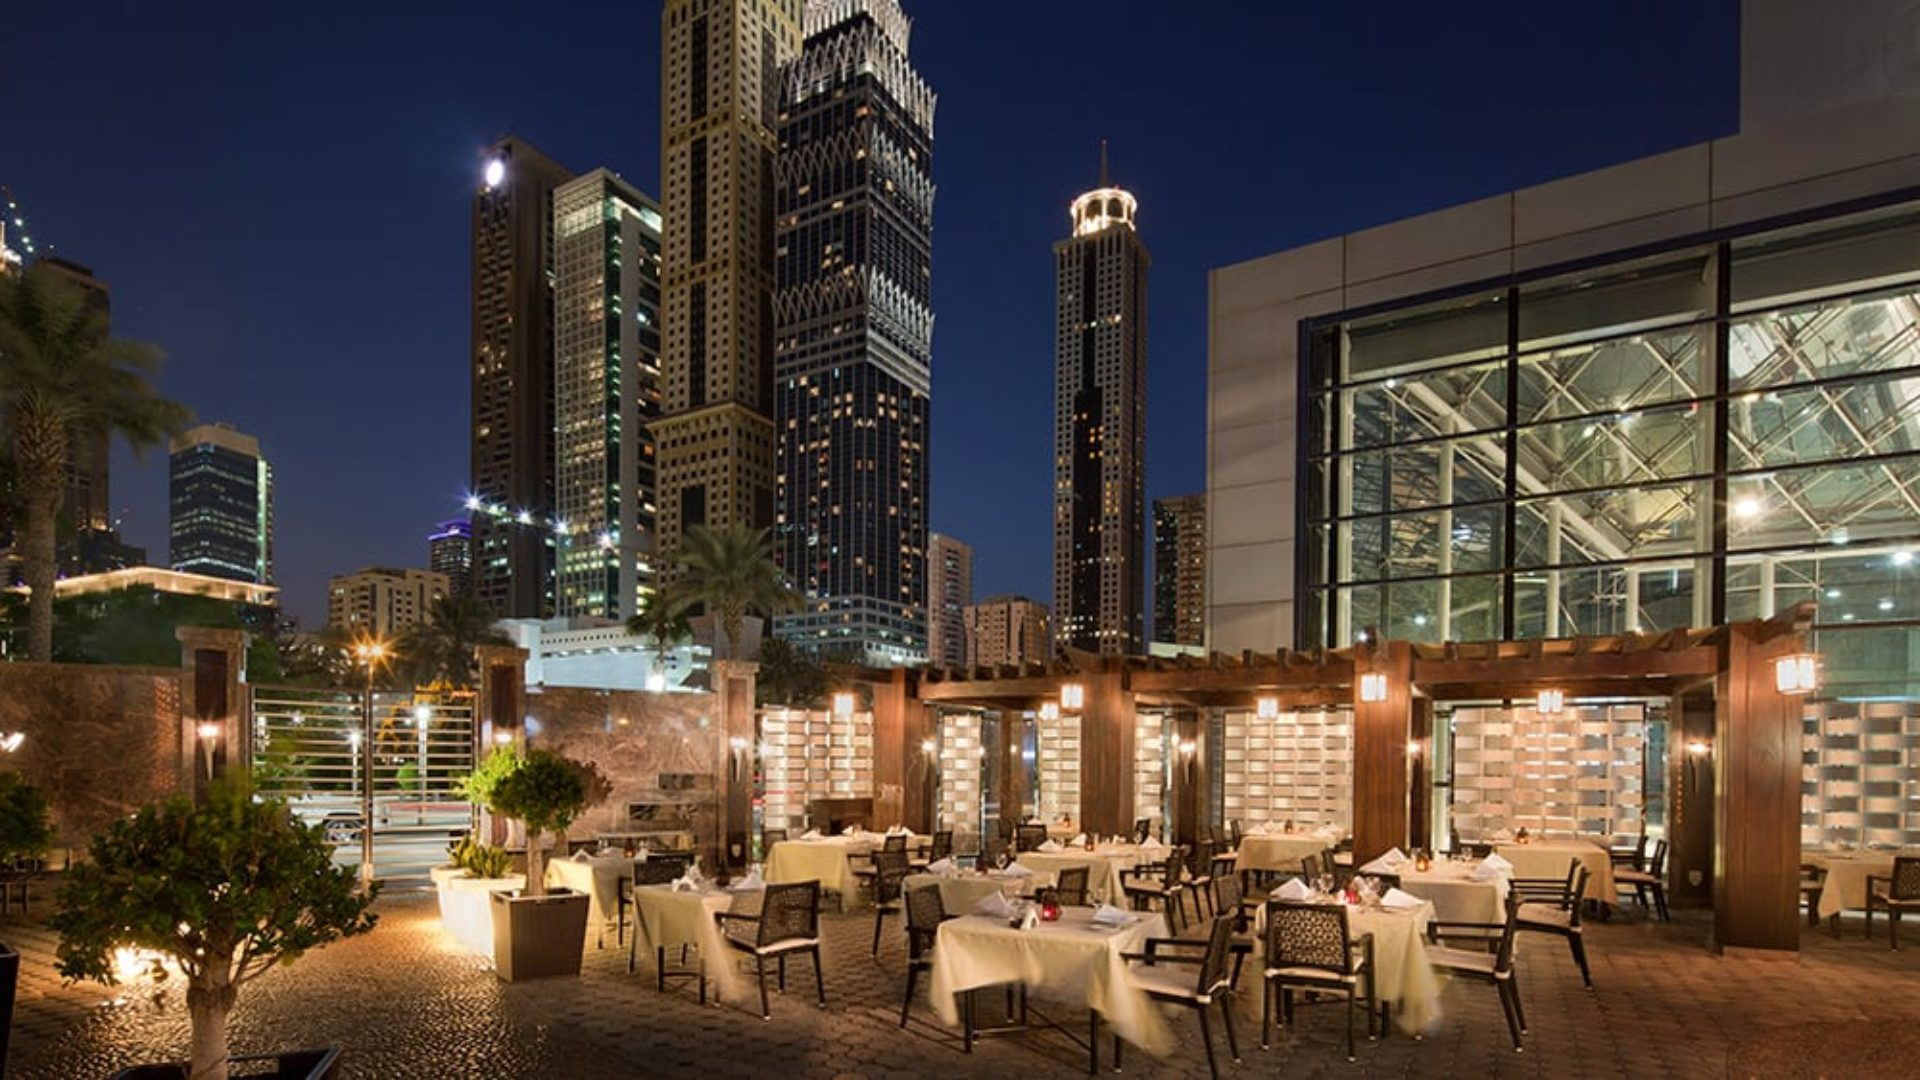 Outdoor dining terrace at Al Nafoorah at Jumeirah Emirates Towers